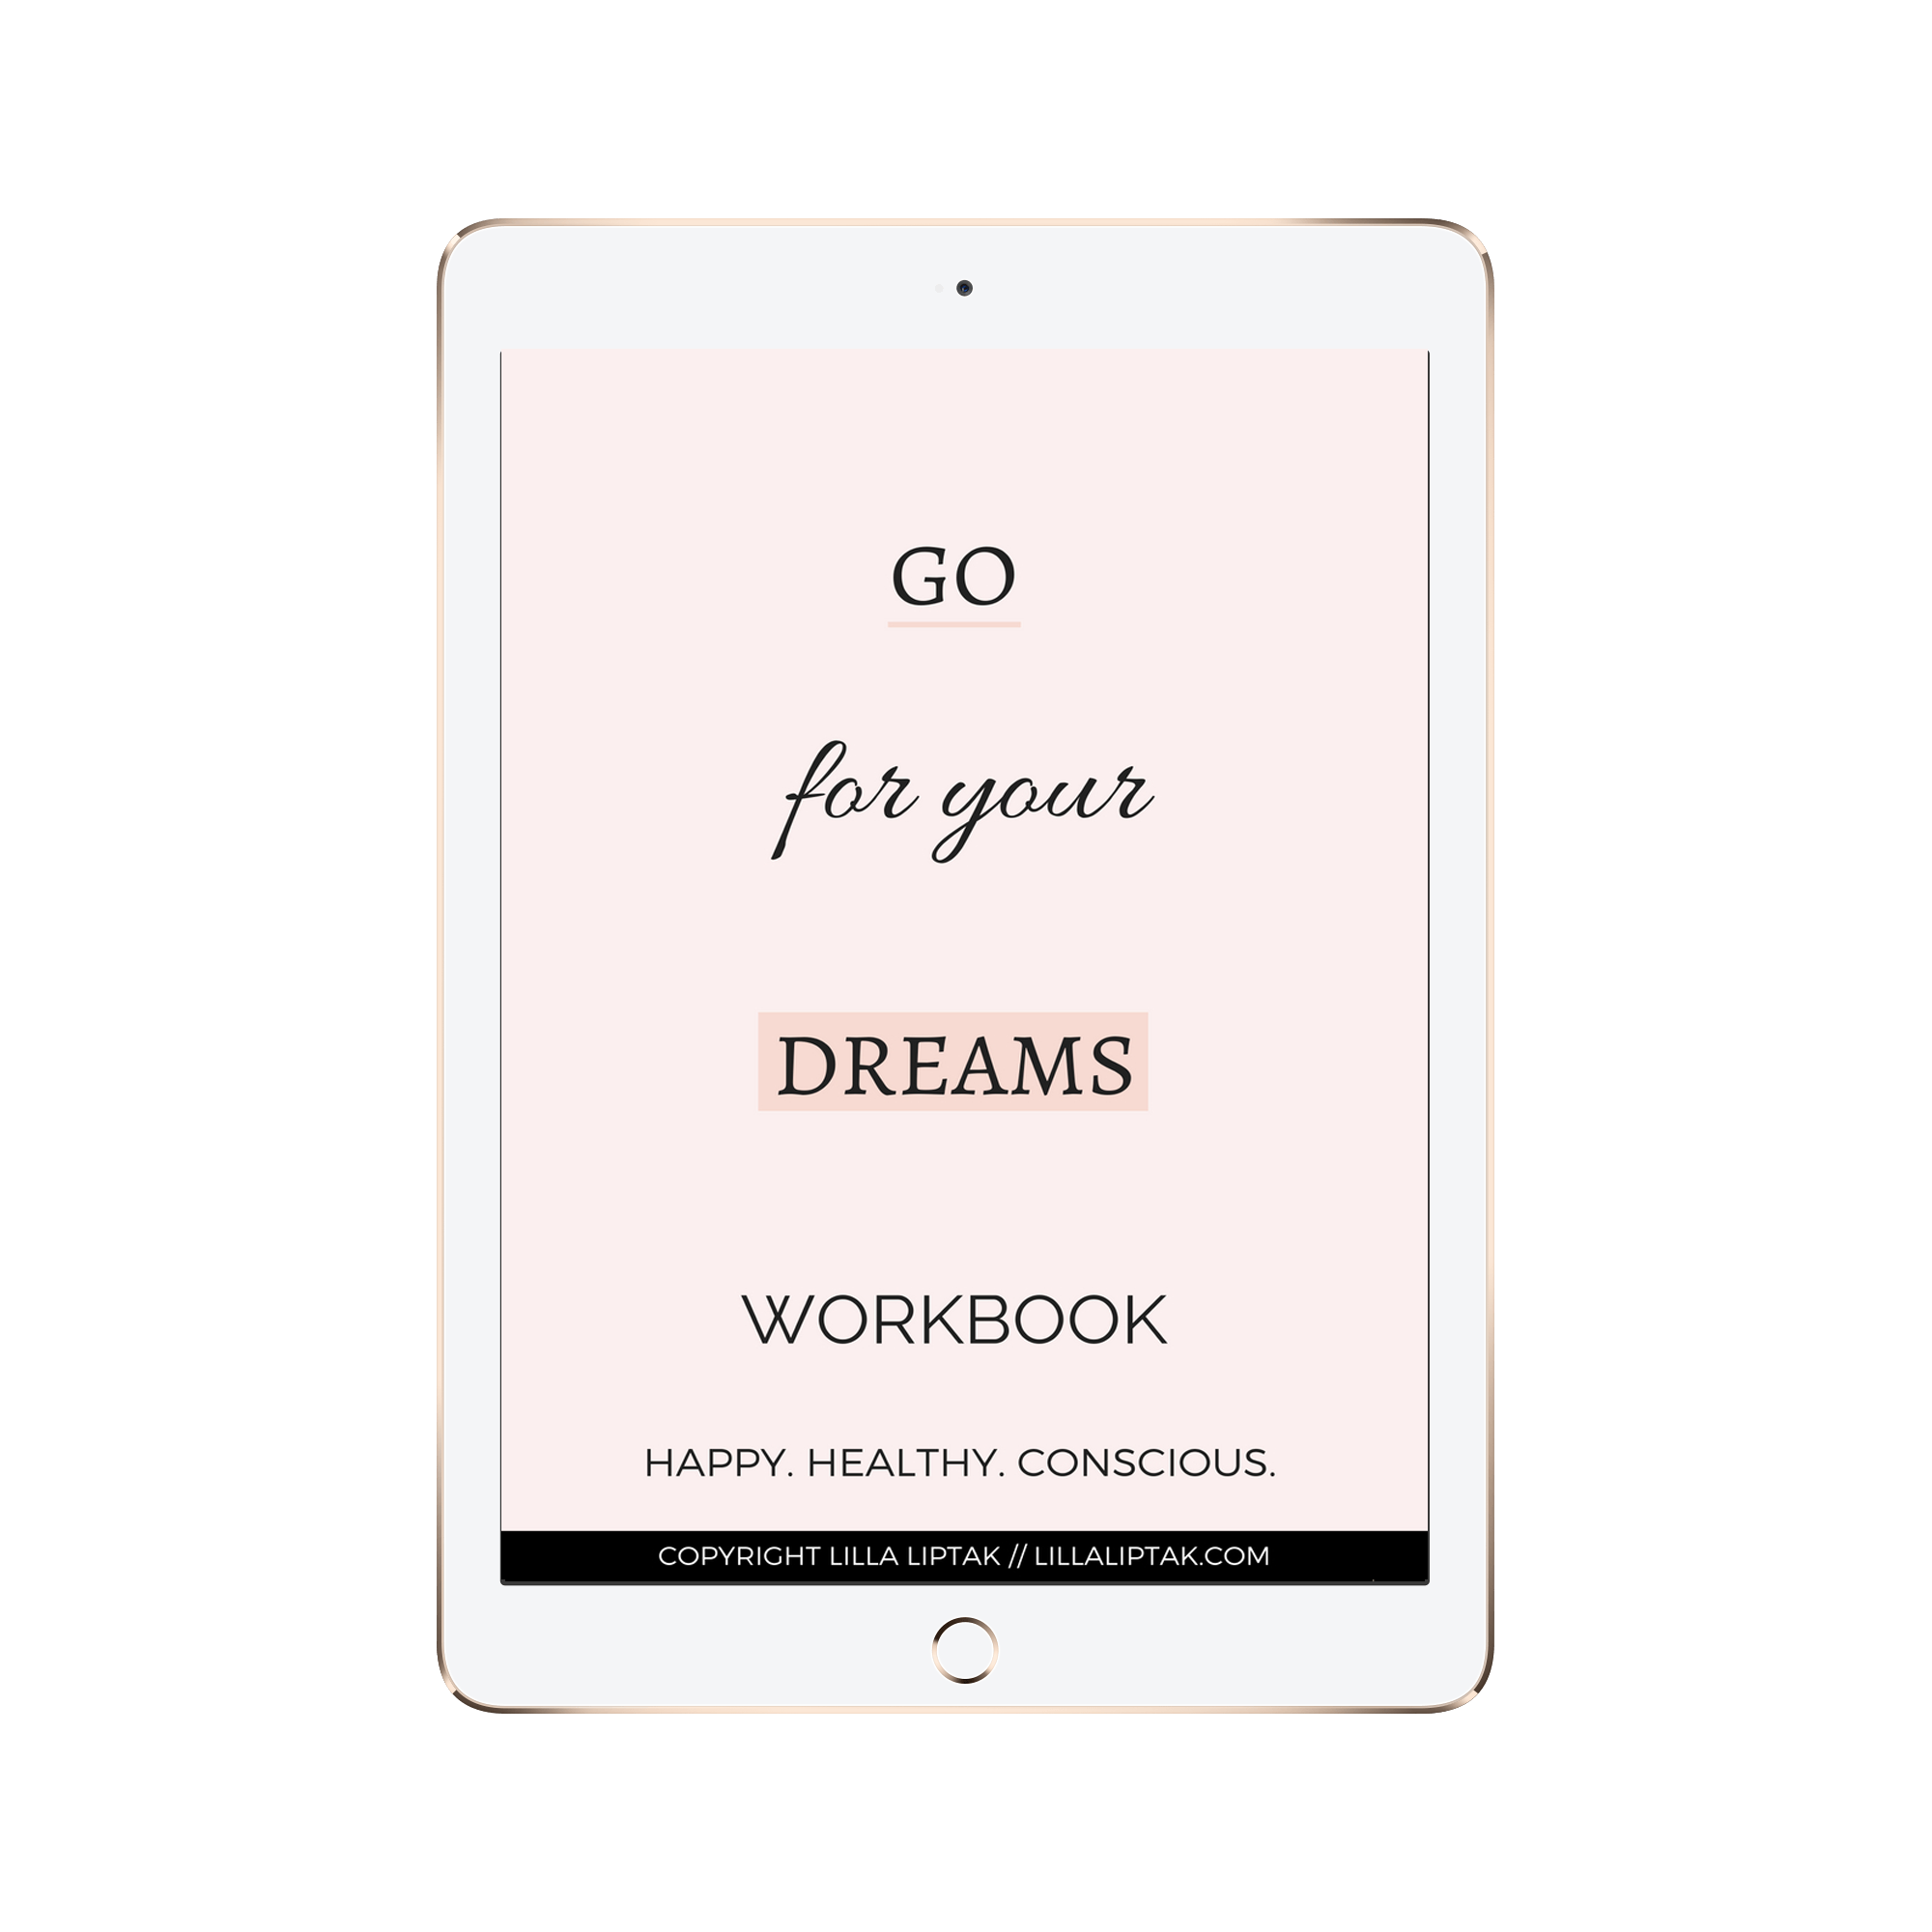 GO-FOR-YOUR-DREAMS